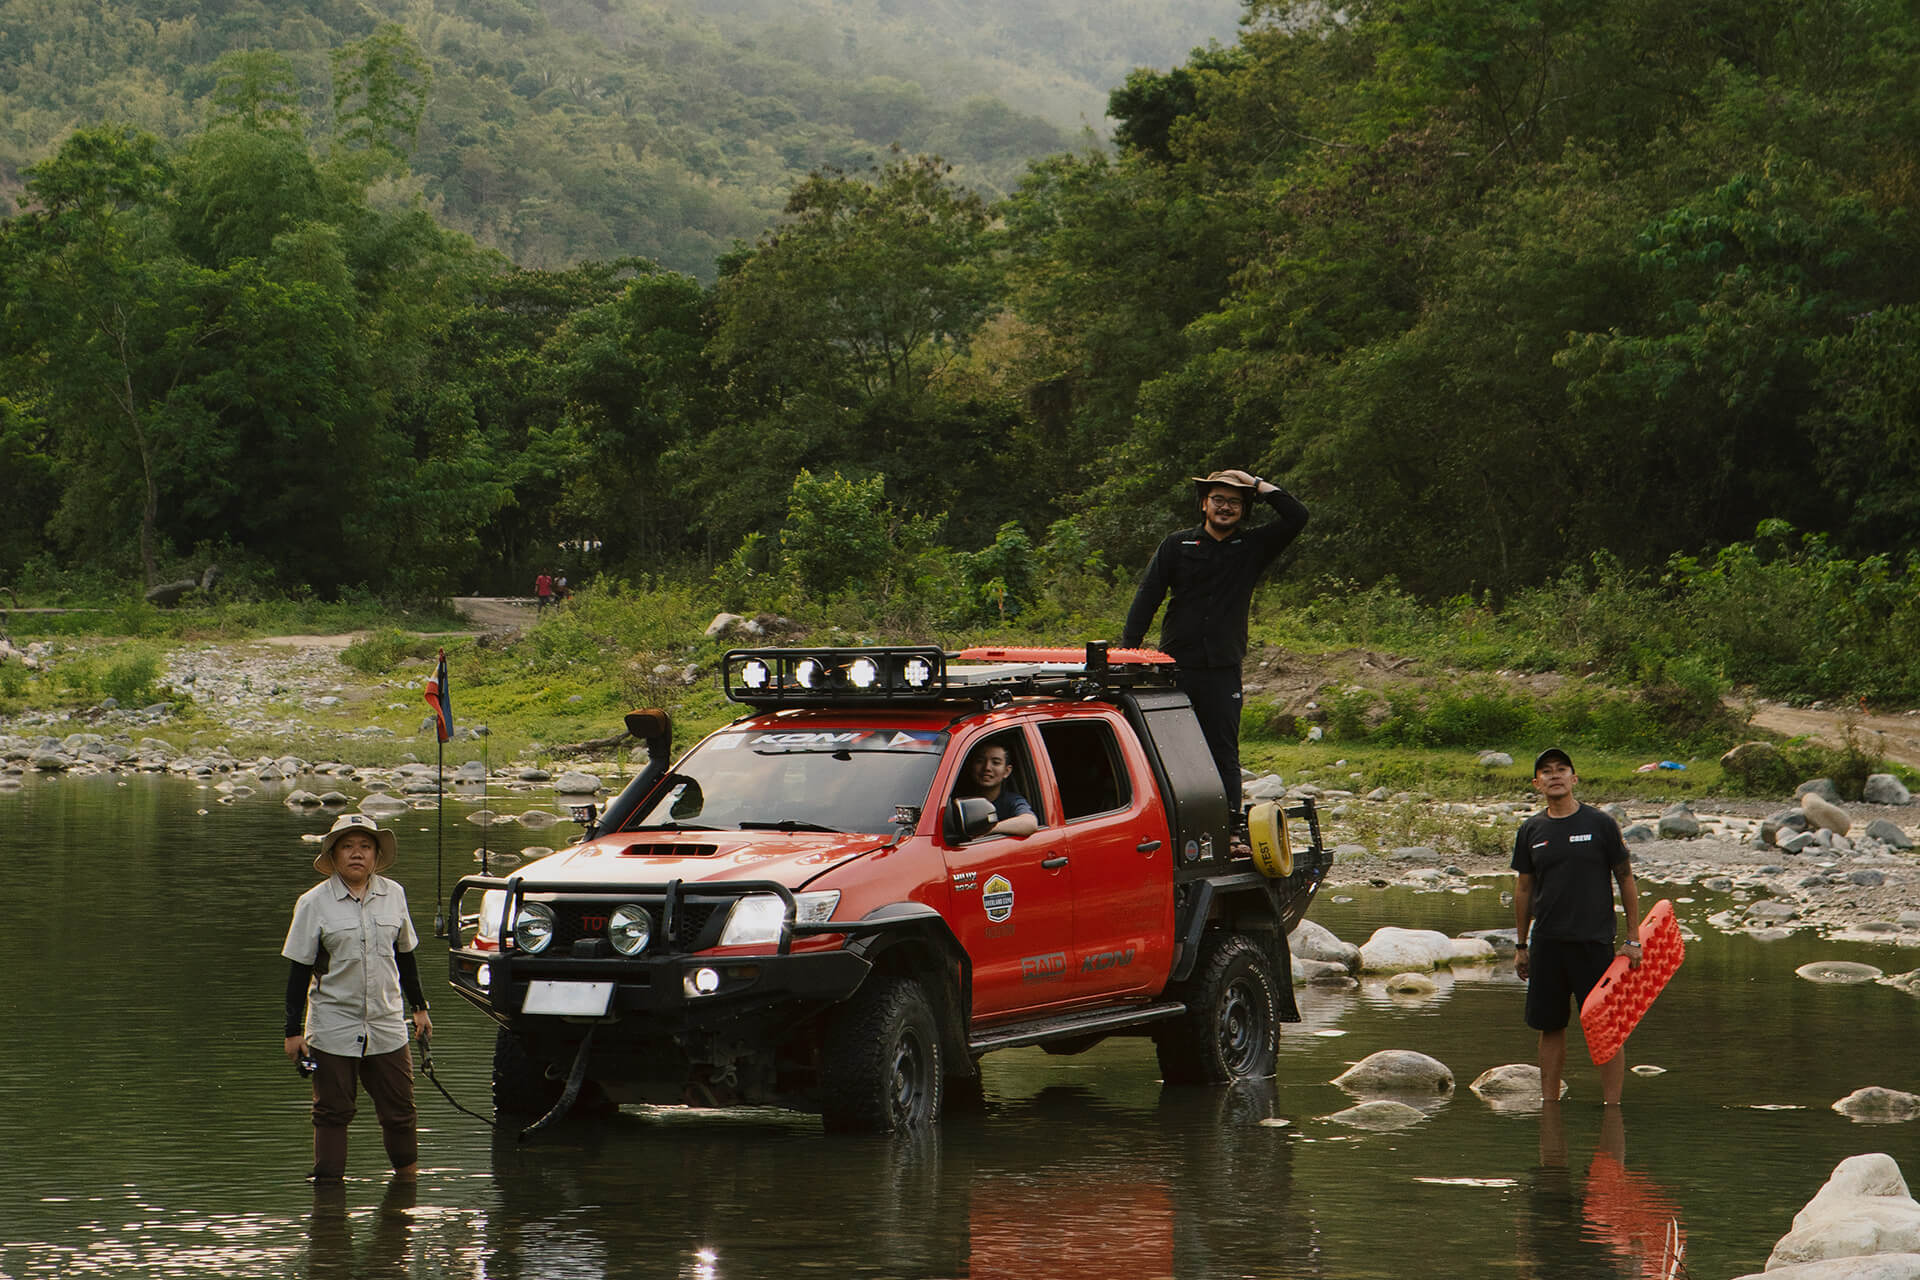 The world of off-roading, camping, and the great outdoors from the backseat of a Toyota Hilux.